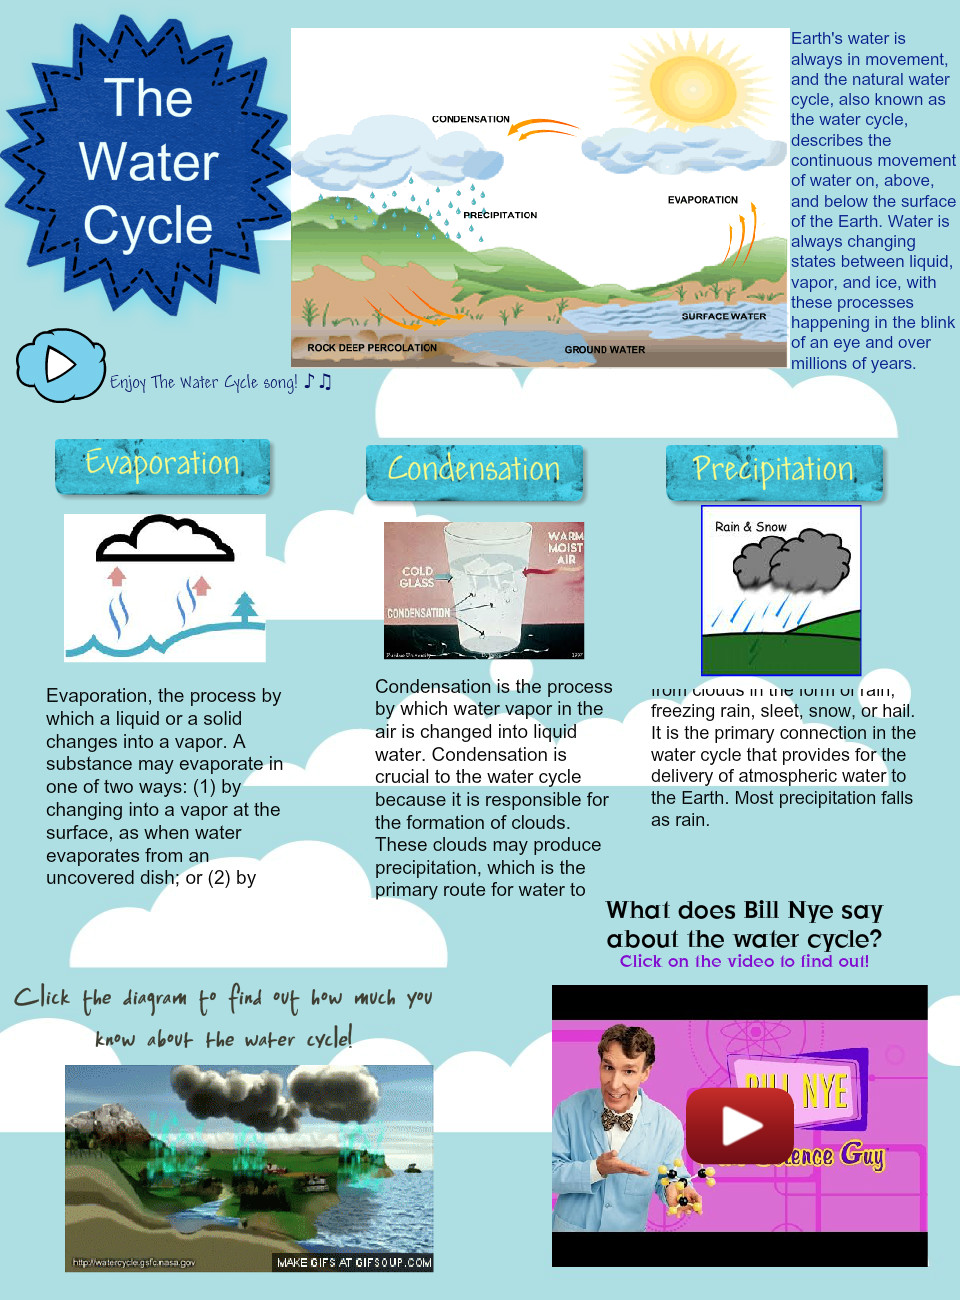 The Water Cycle Condensation Cycle Earth En Evaporation